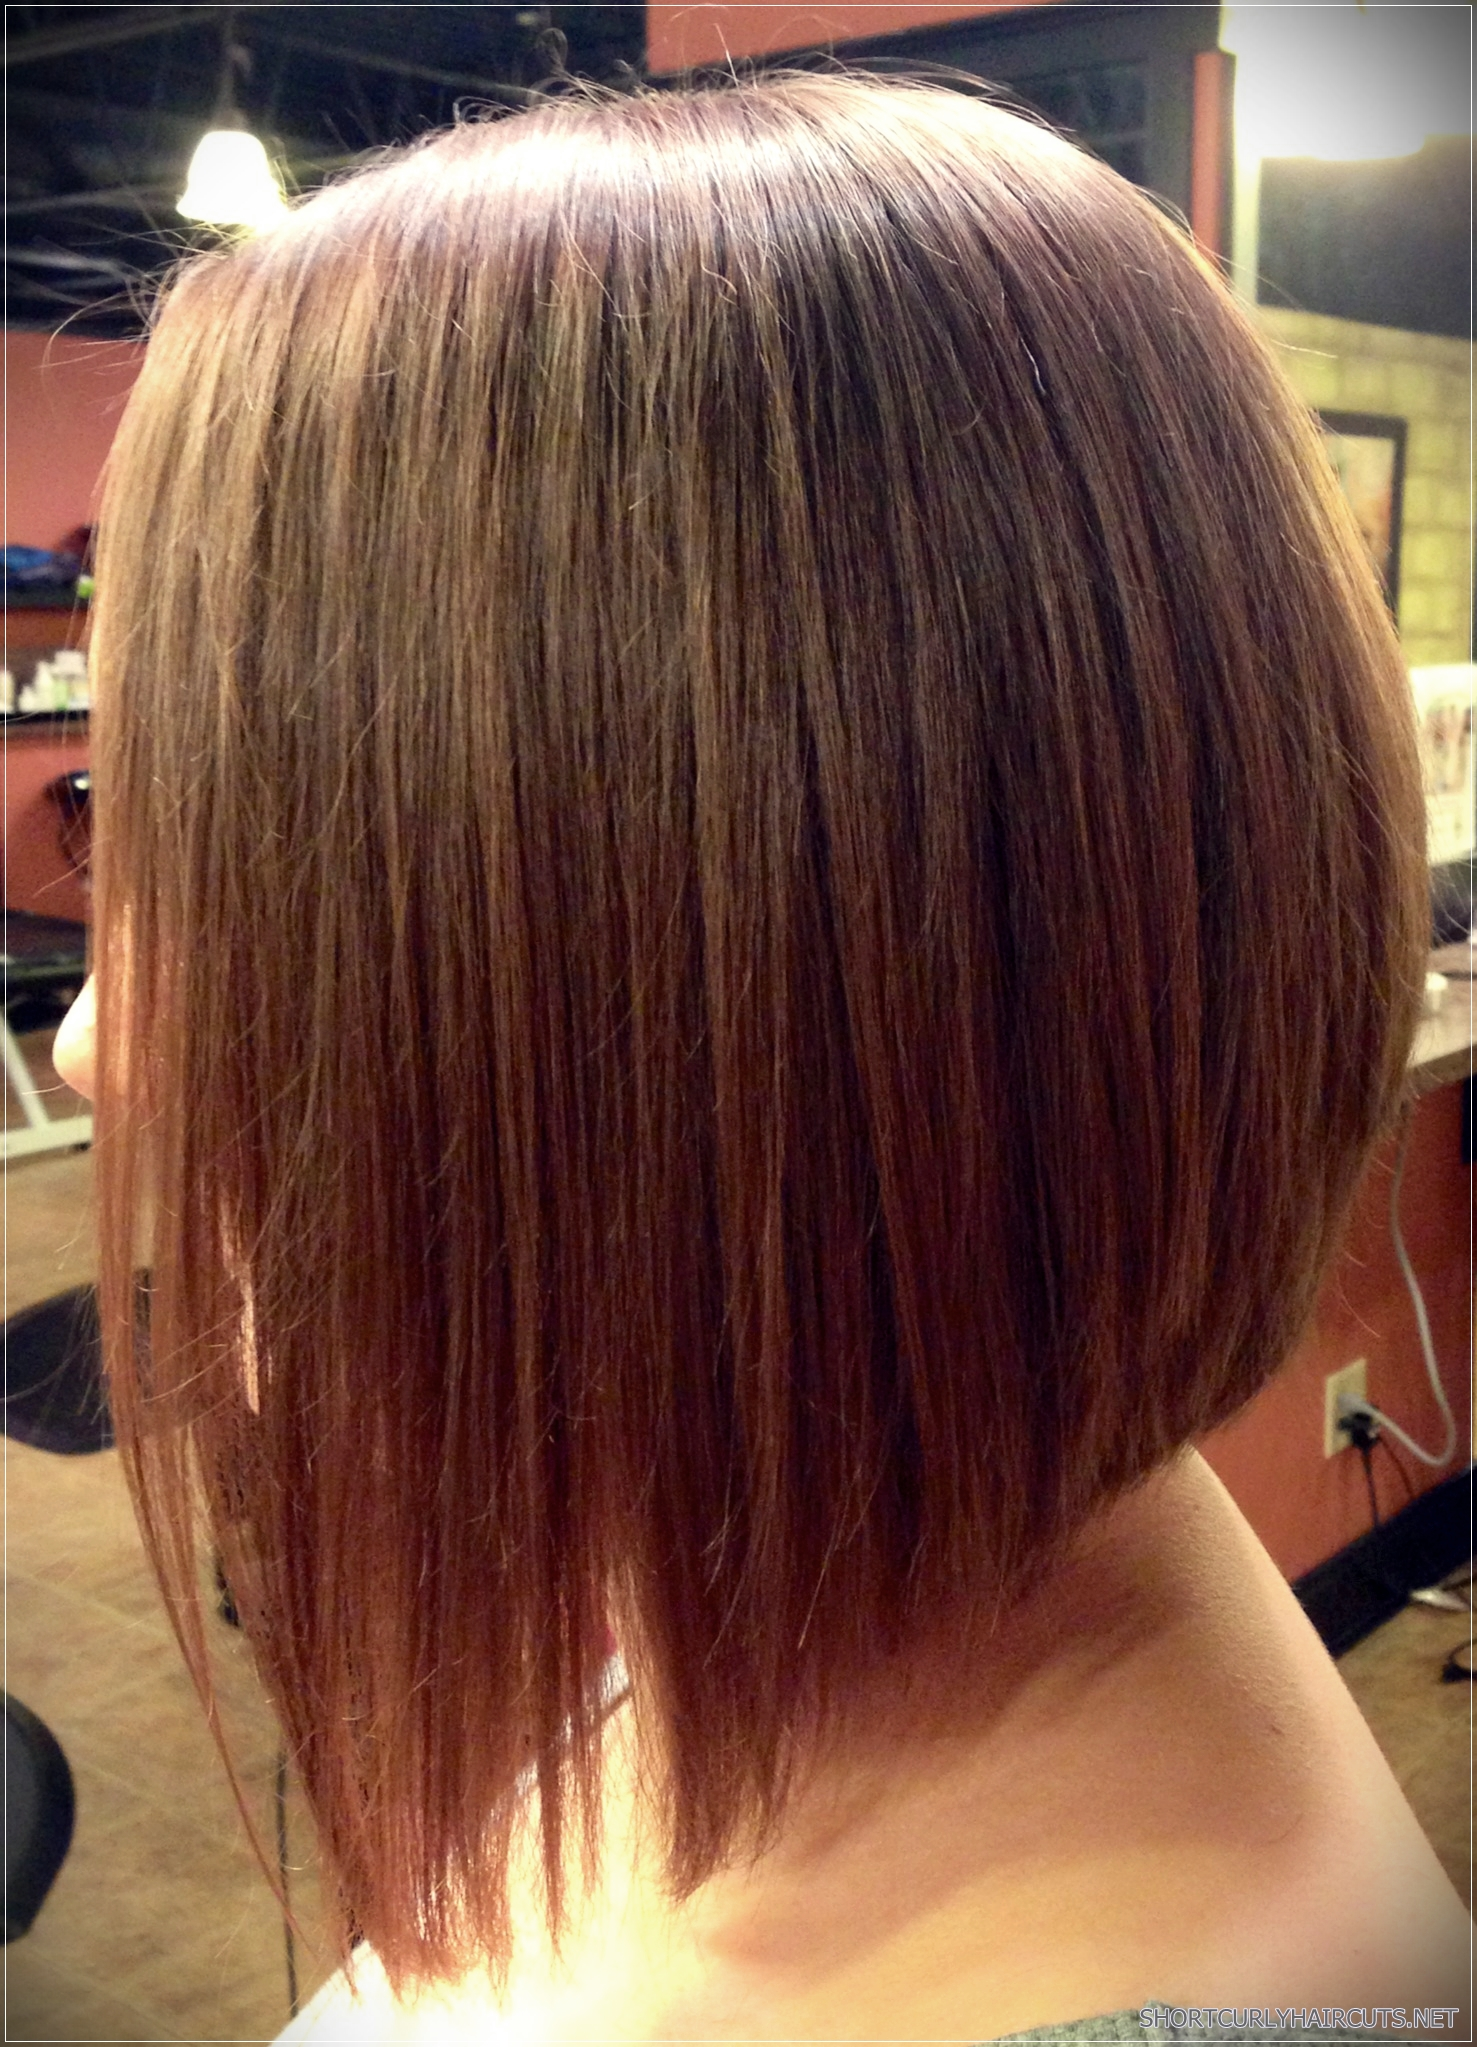 long-choppy-bob-hairstyles-brunettes-and-blondes-4